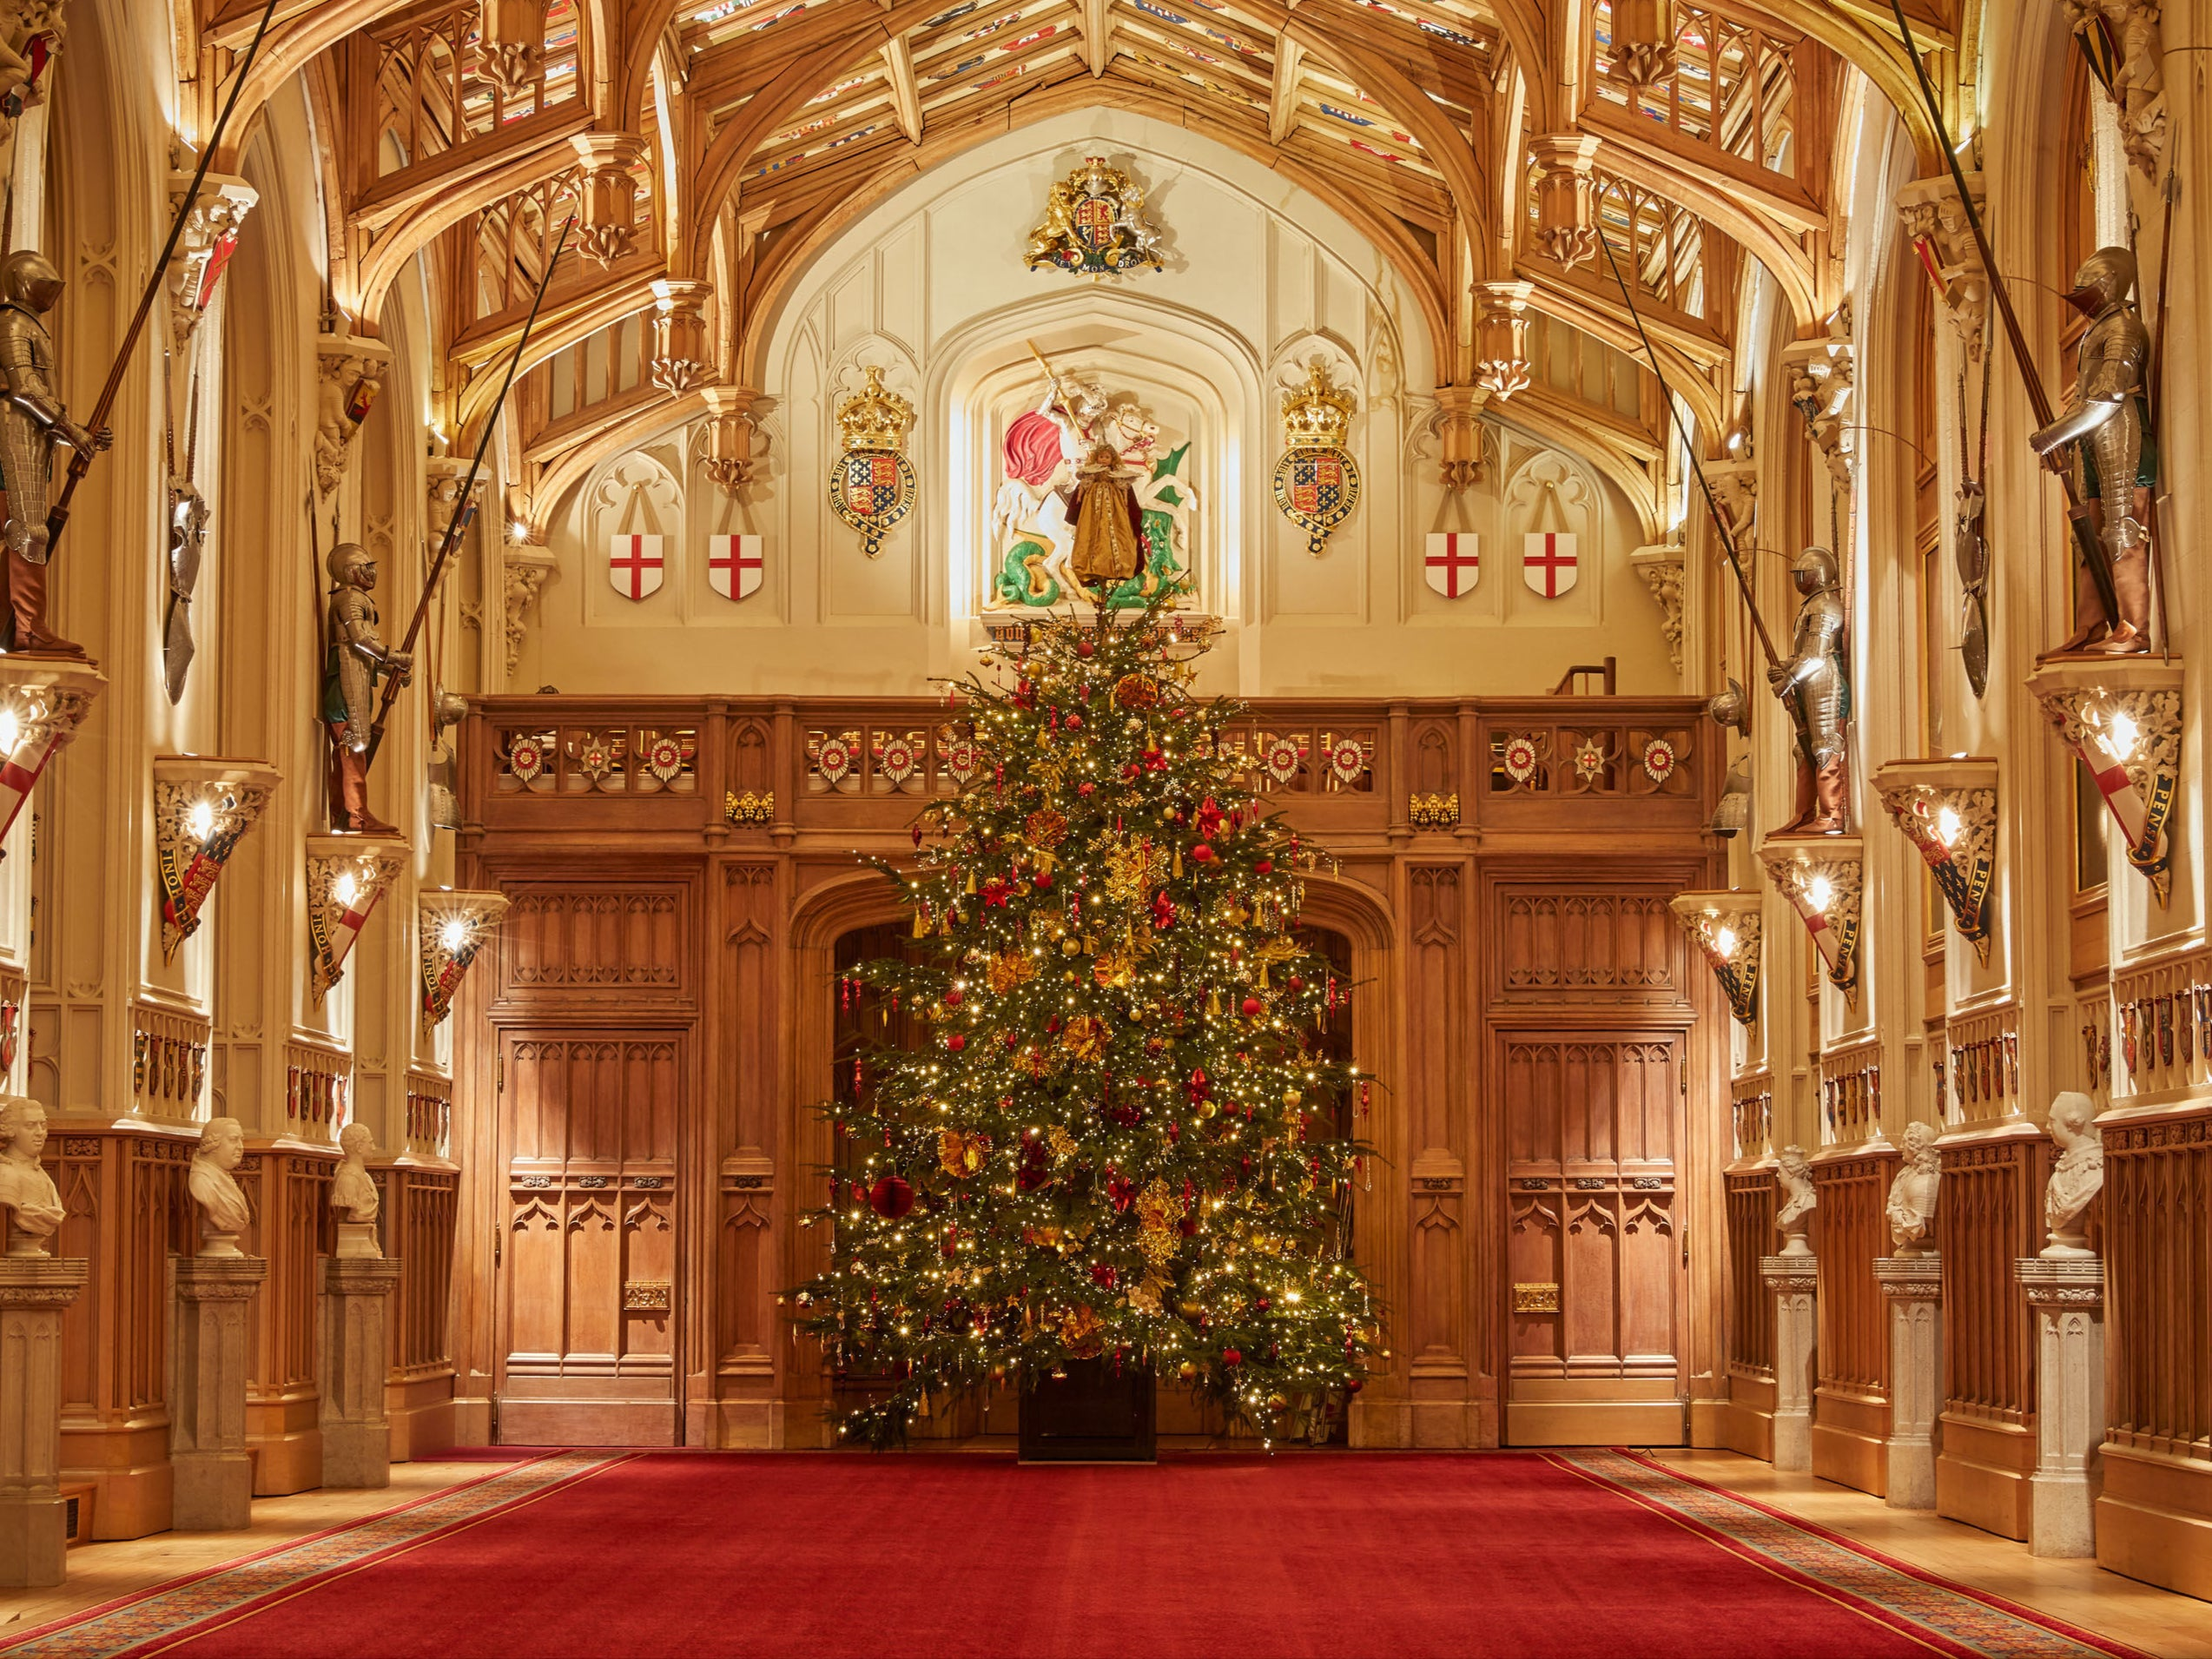 See photos of the Queen's Christmas decorations at Windsor Castle